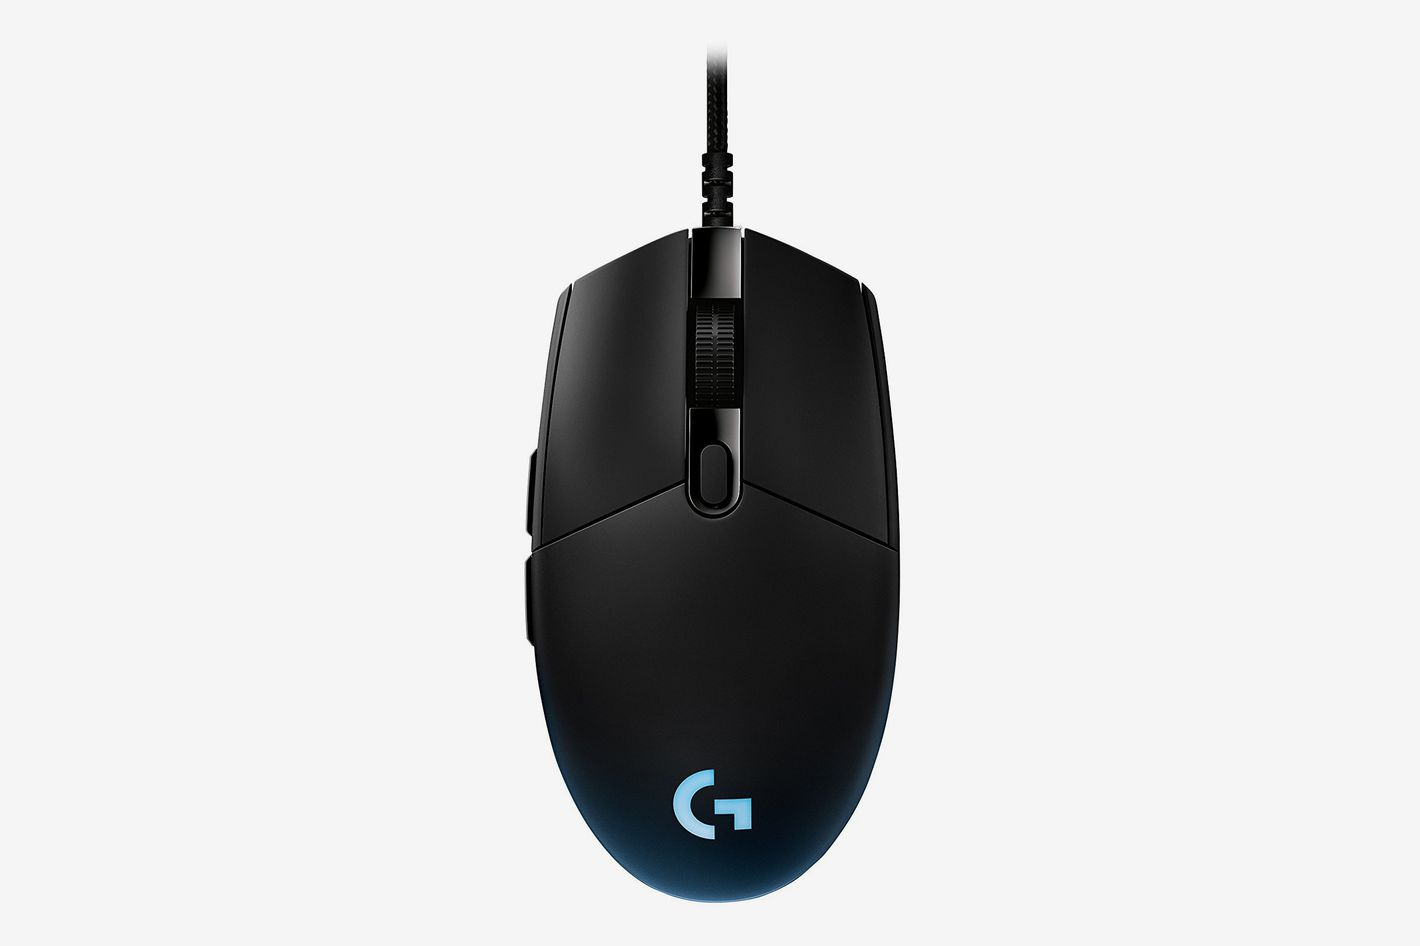 Best Logitech gaming mouse for FPS (first-person shooters)